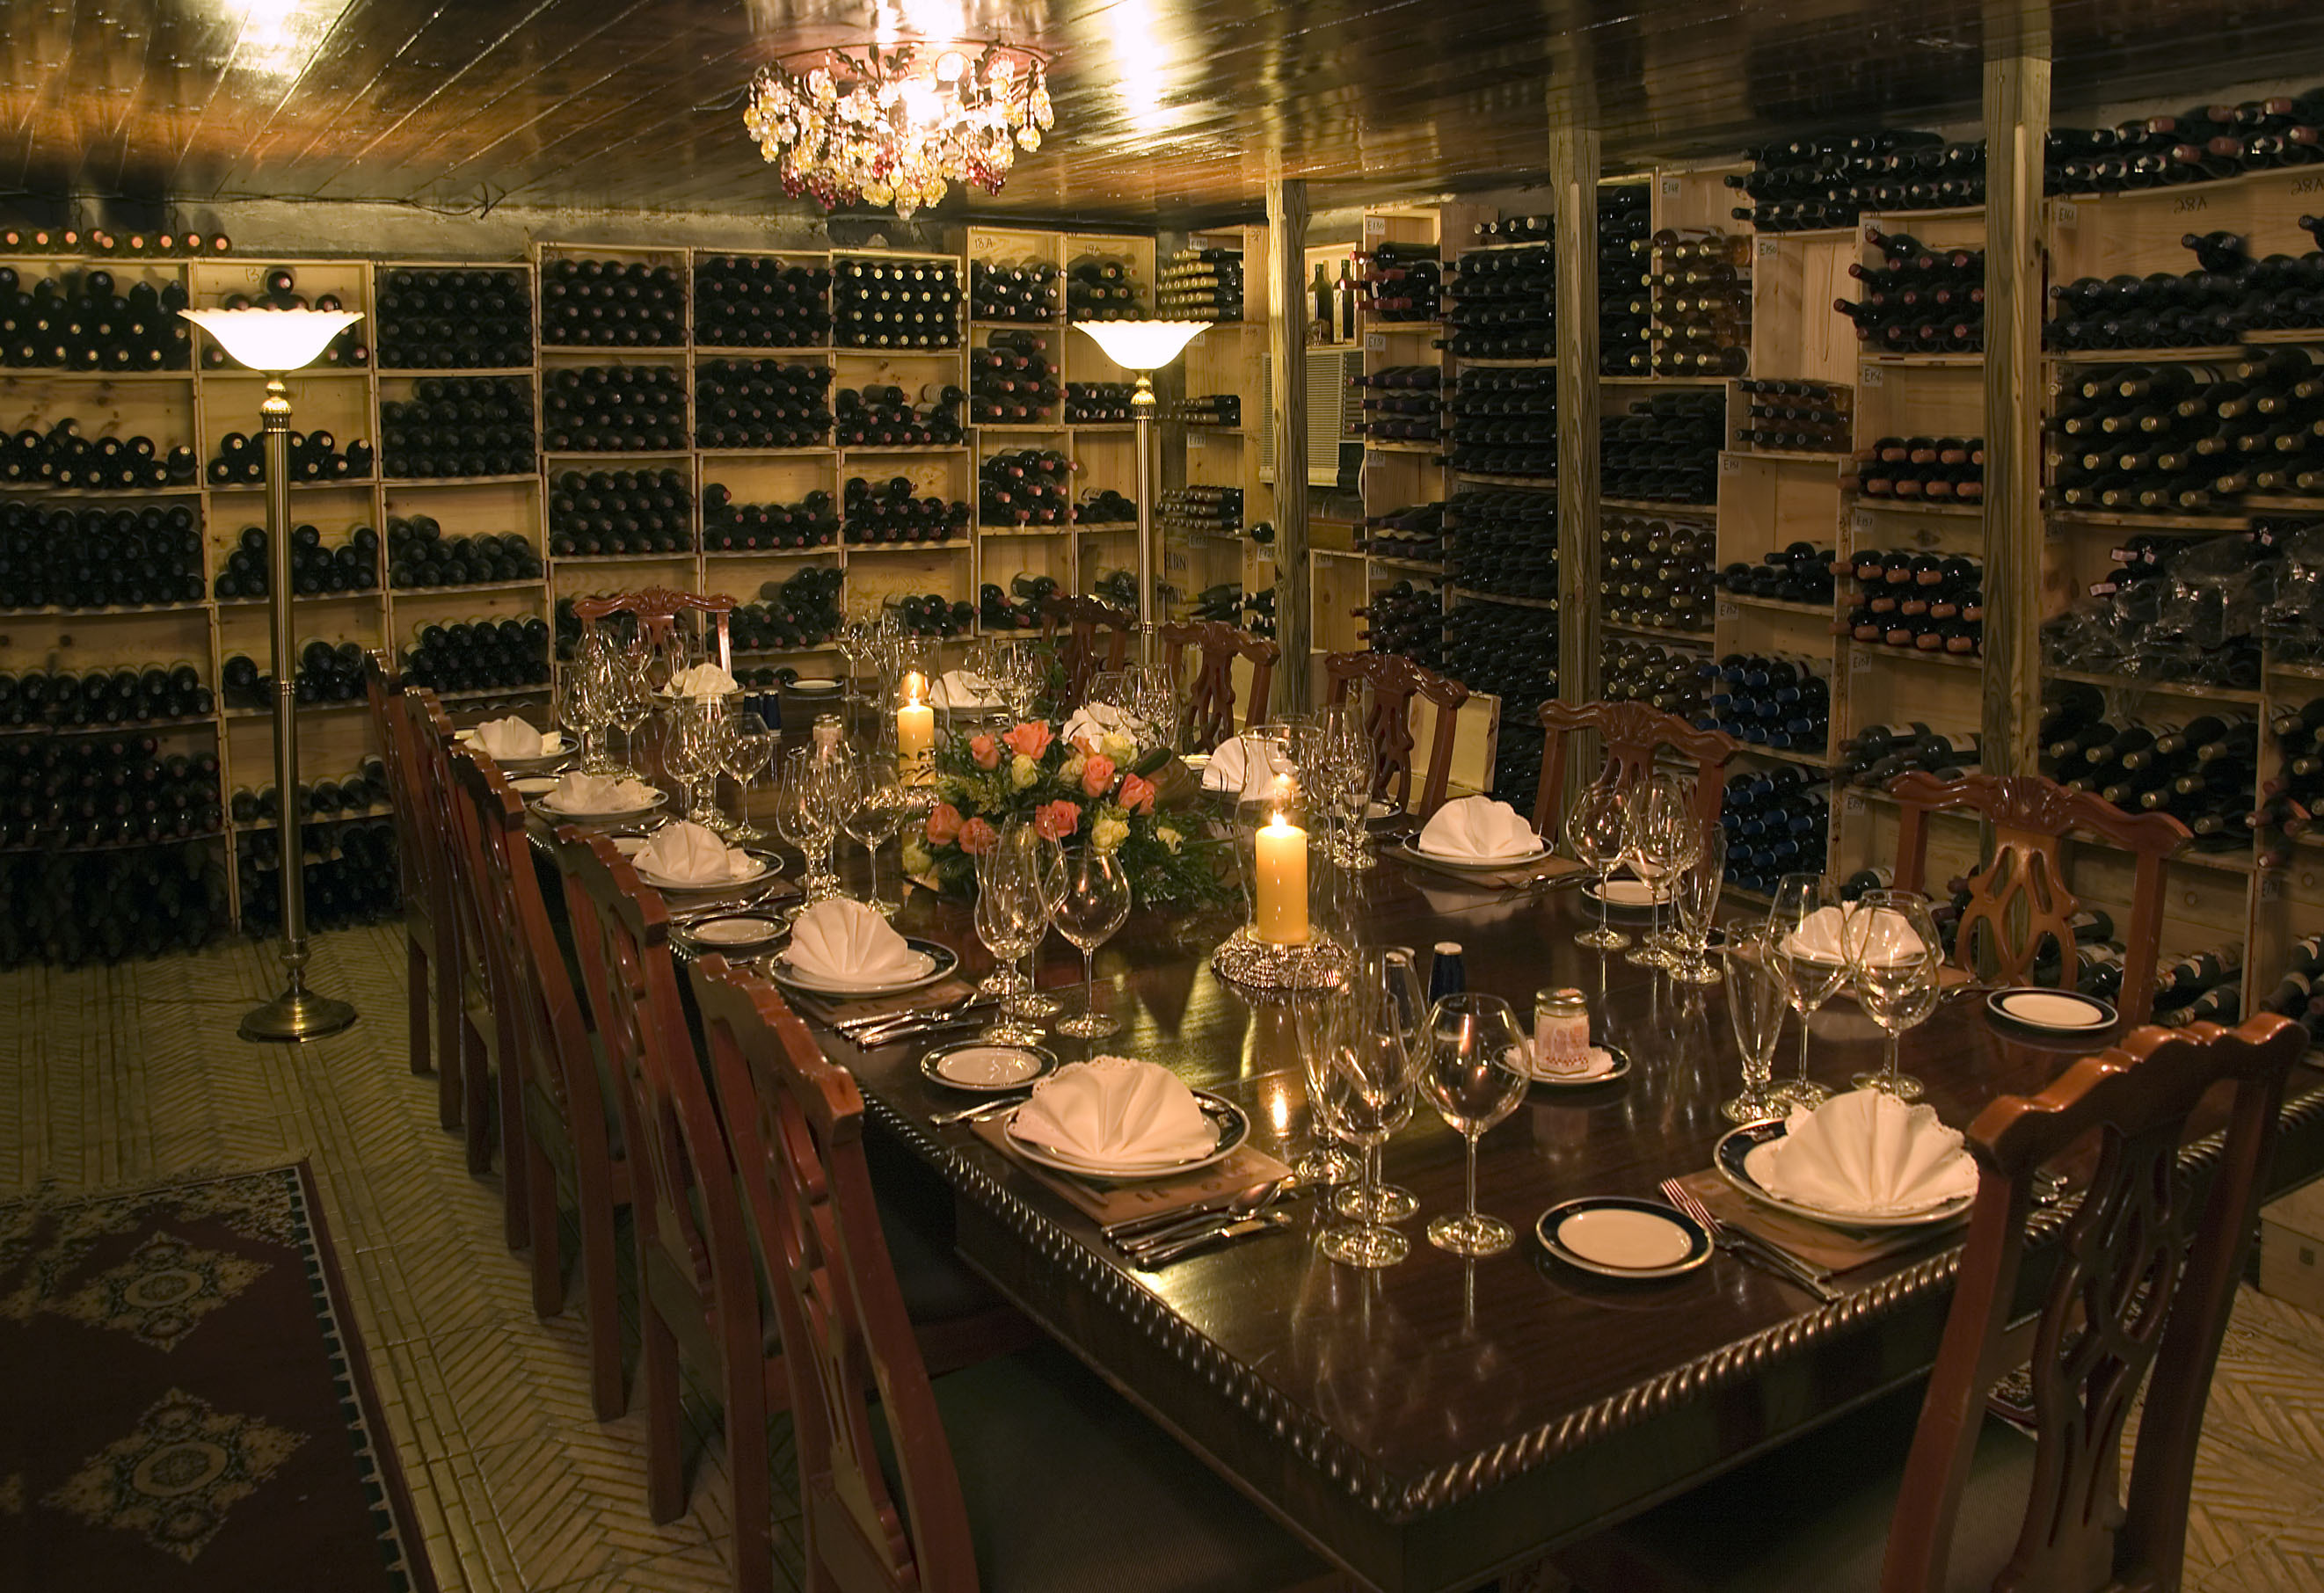 Graycliff Mansion Nassau Bahamas Review  Dinner In Graycliff Wine Cellar  Points Miles  Martinis